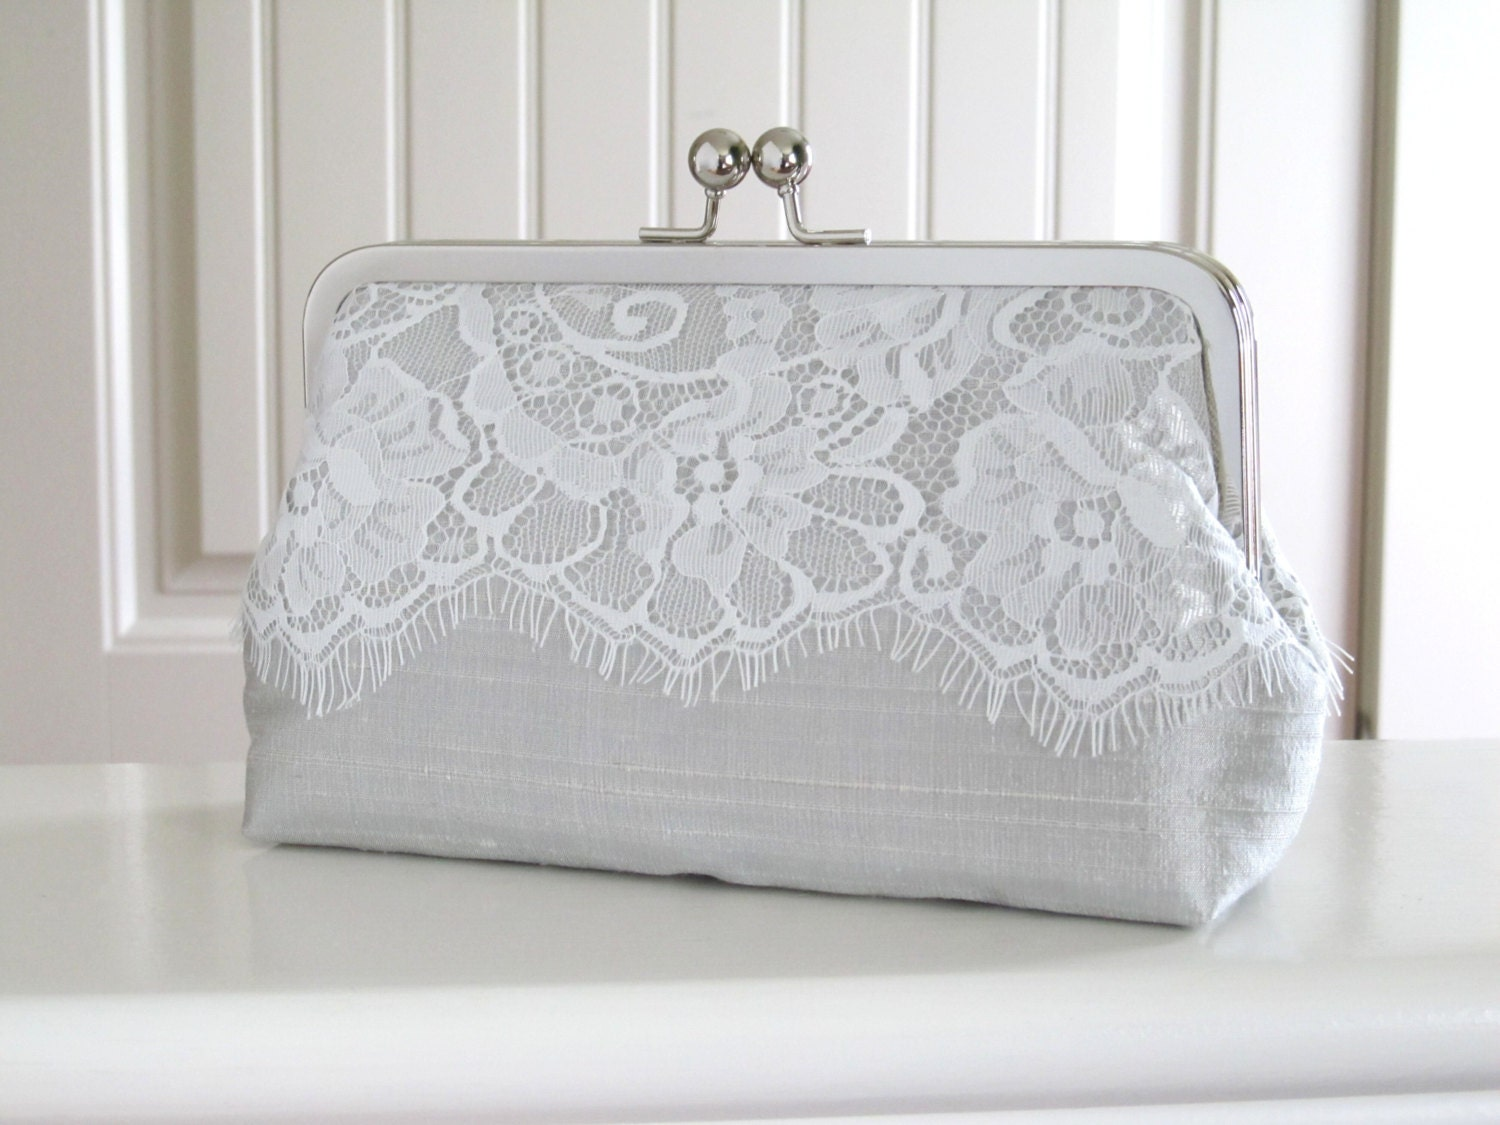 Silk And Eyelash Lace Clutch,Ivory And Grey Mist Eyelash Lace Clutch,Bridal Accessories,Wedding Clutch, Bridesmaid Clutch